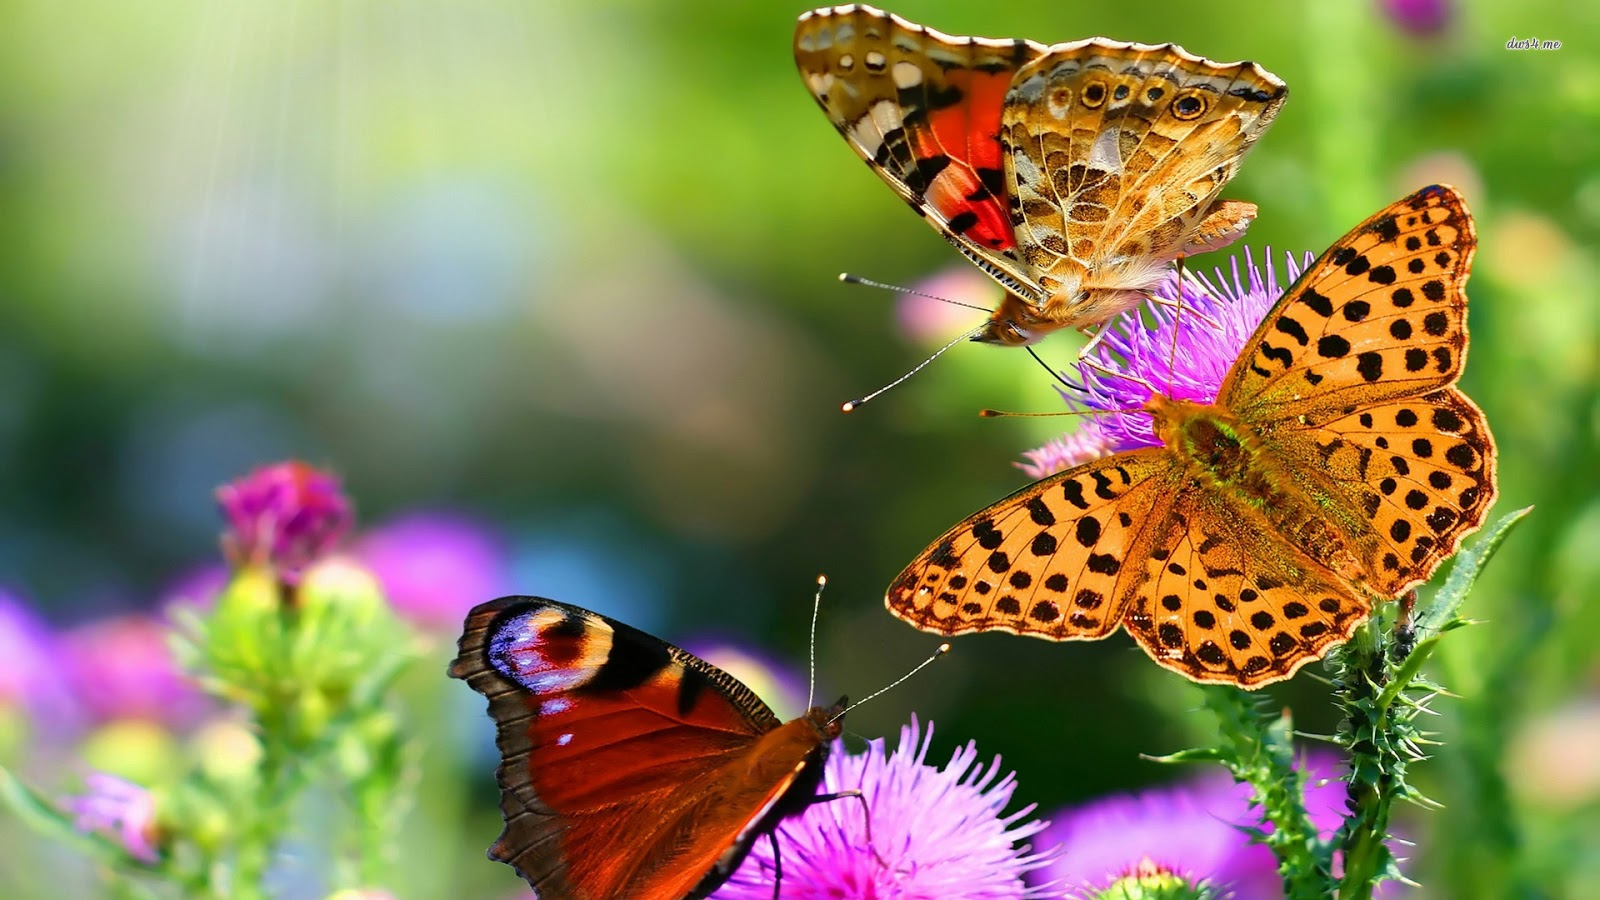 3D <b>Butterfly</b> Live <b>Wallpaper</b> - Android Apps on Google Play